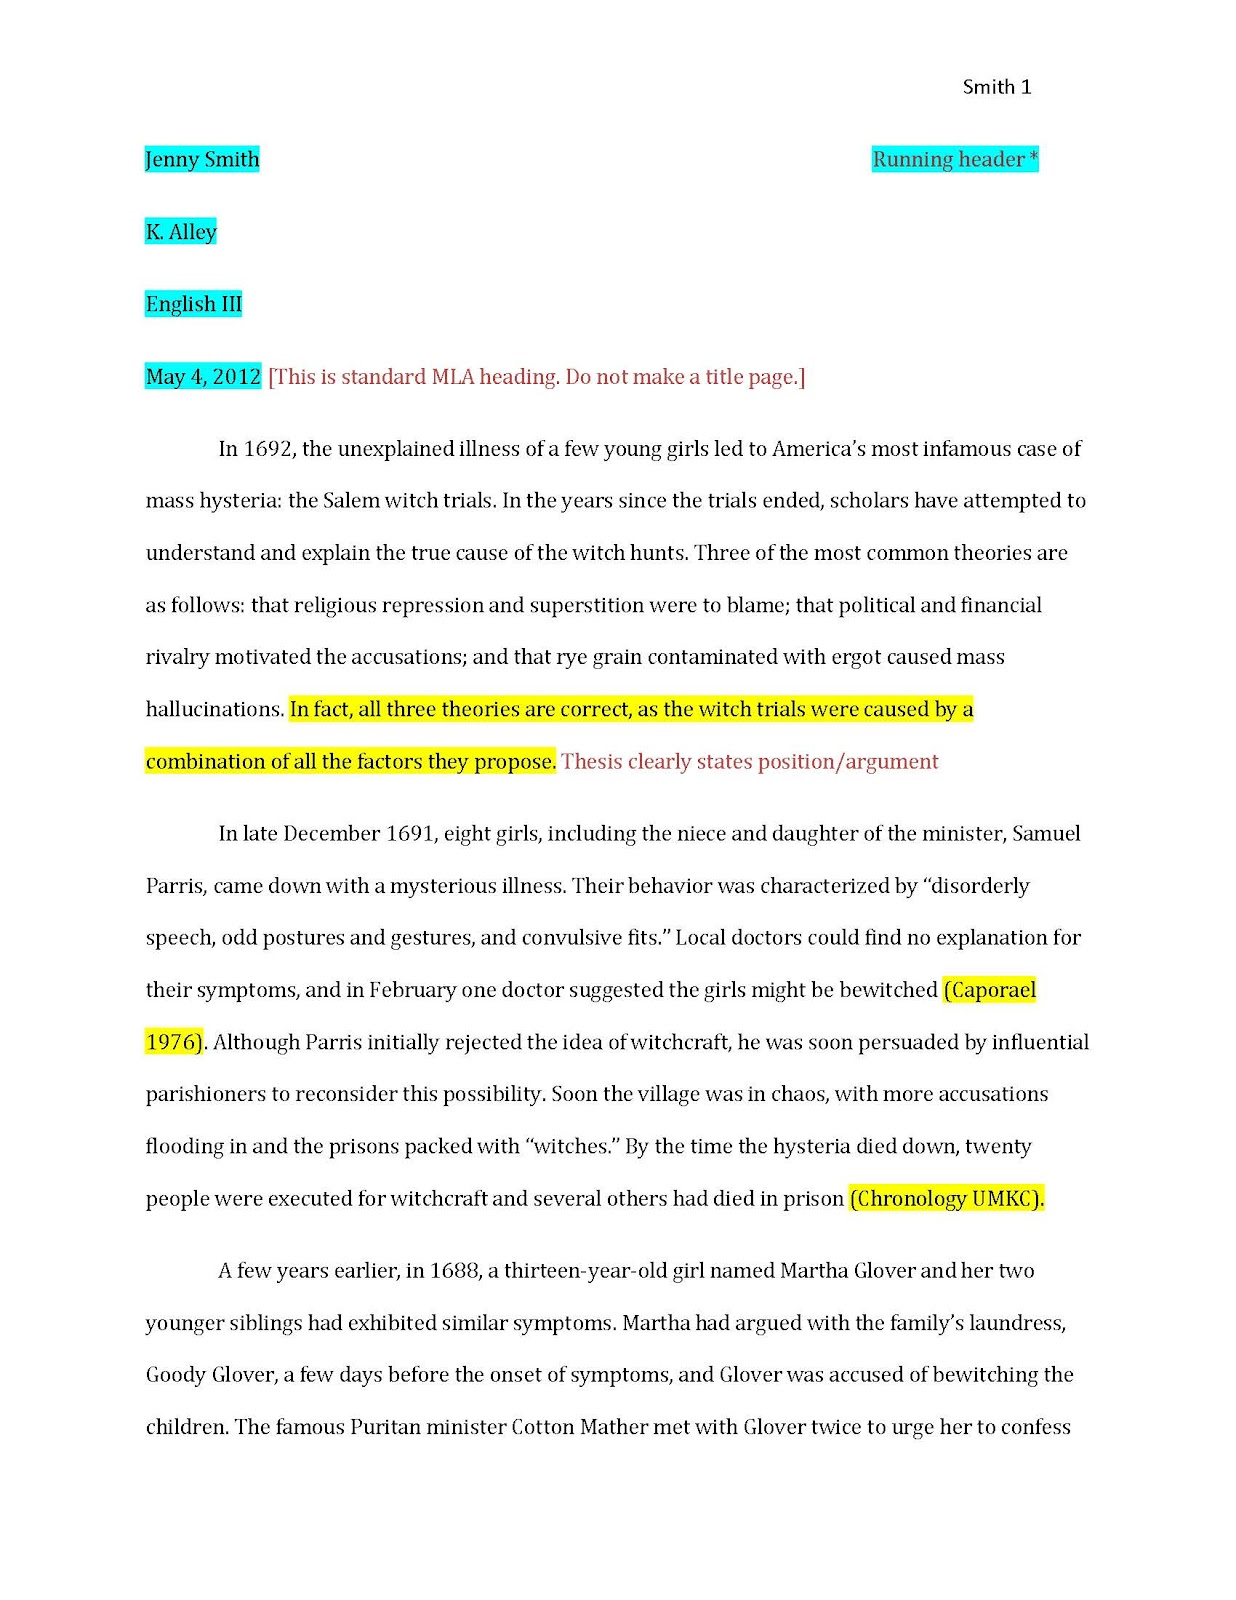 avoiding plagiarism mla citation style sample. Resume Example. Resume CV Cover Letter